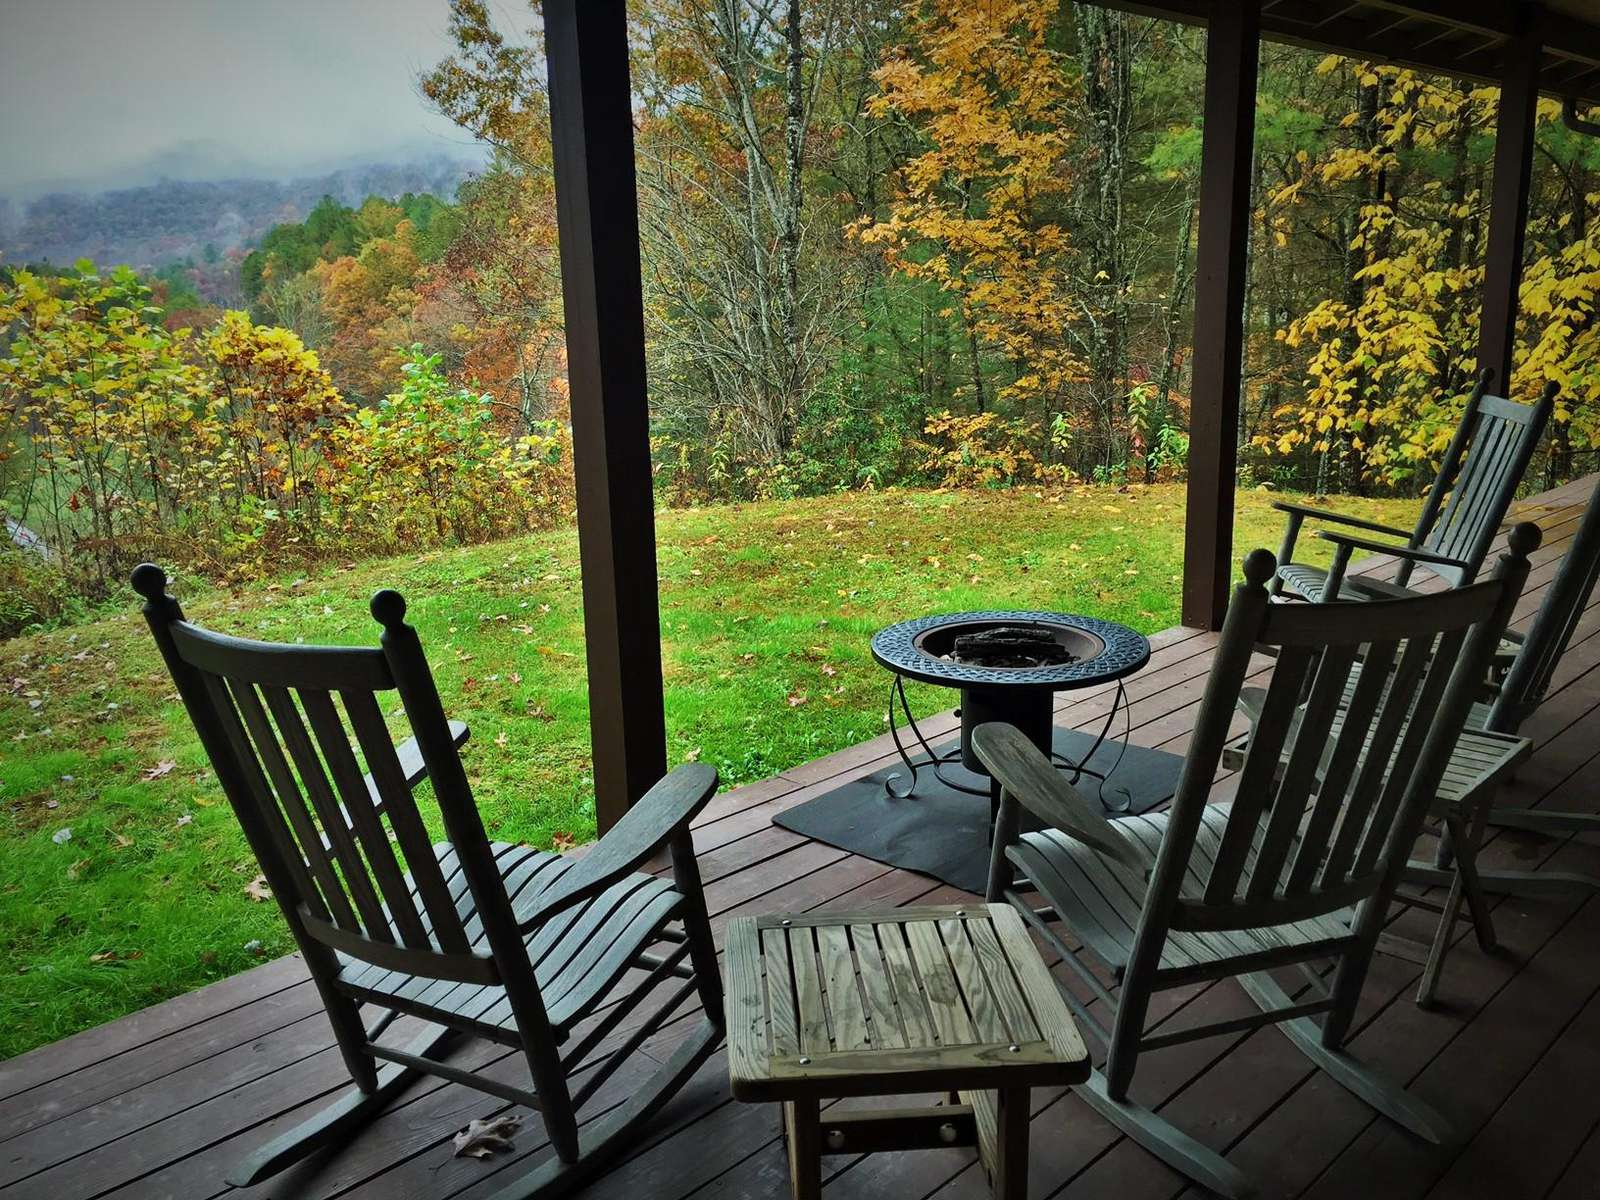 Pull up a Chair and Enjoy the Views!